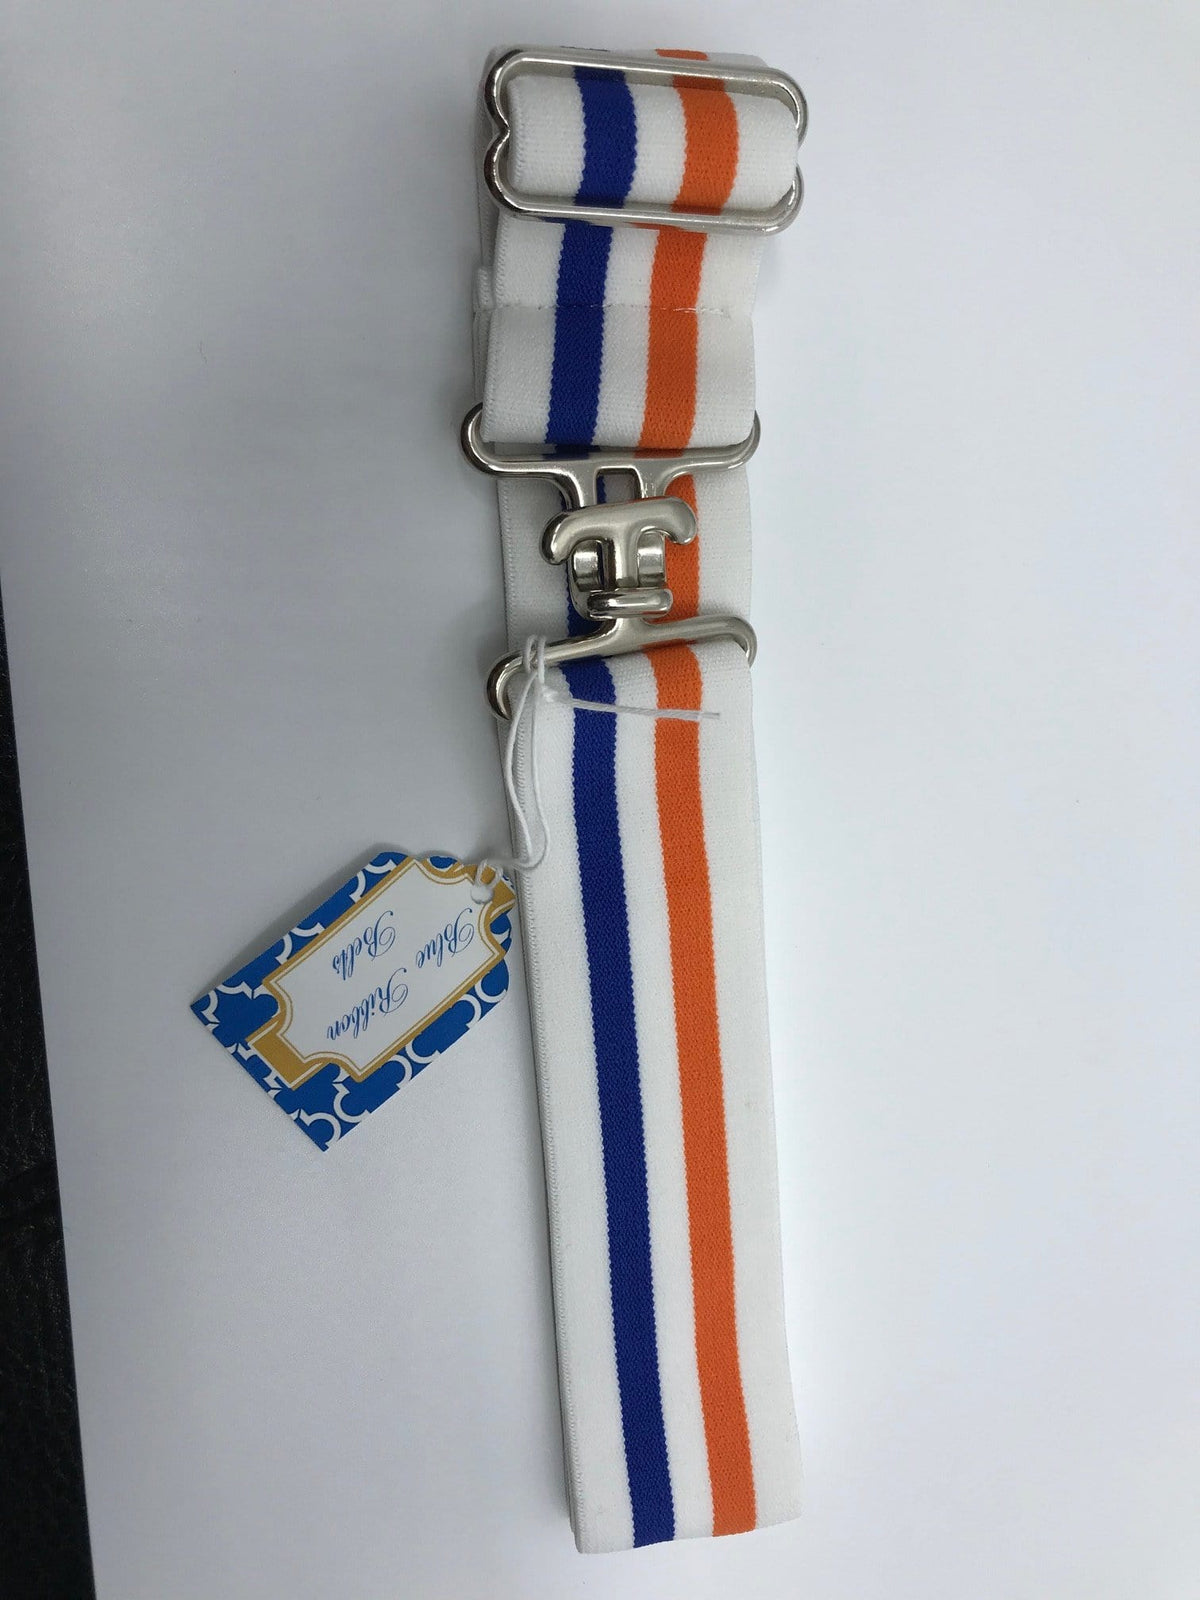 "Blue Ribbon Belts Belt Orange/Blue Stripe Blue Ribbon Belts 1.5"" equestrian team apparel online tack store mobile tack store custom farm apparel custom show stable clothing equestrian lifestyle horse show clothing riding clothes horses equestrian tack store"